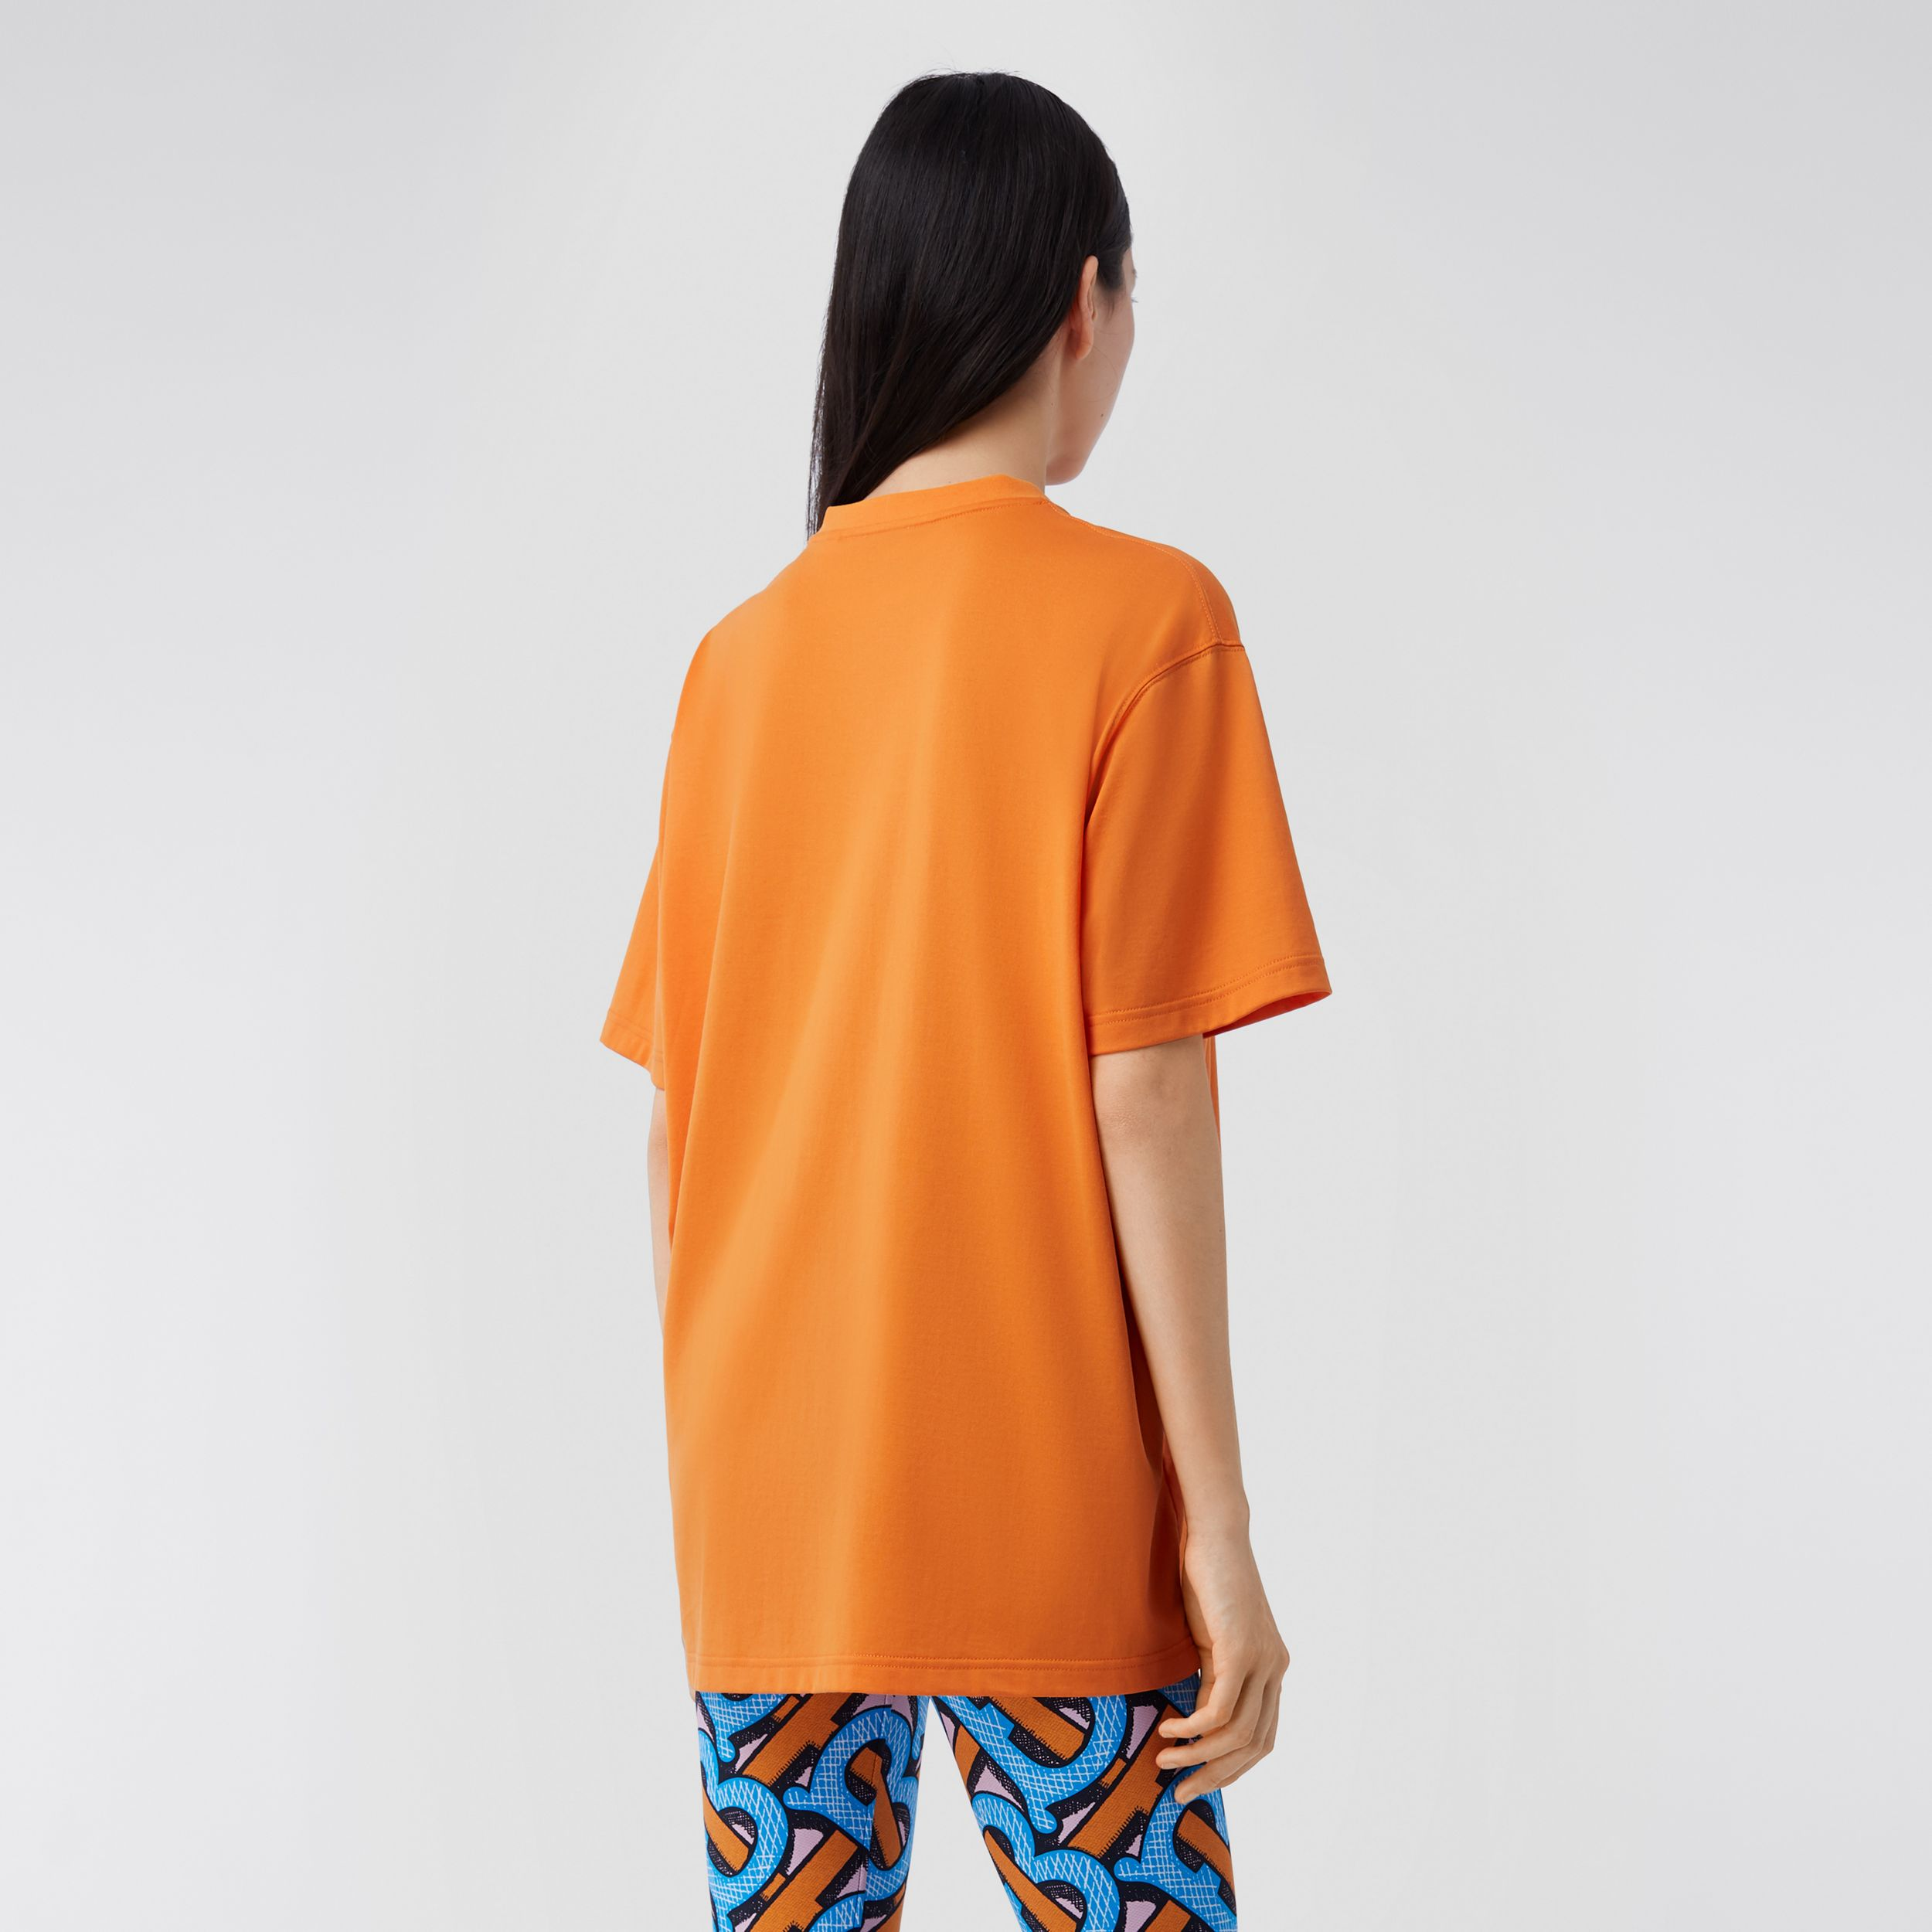 Monogram Motif Cotton T-shirt – Unisex in Bright Orange | Burberry - 3